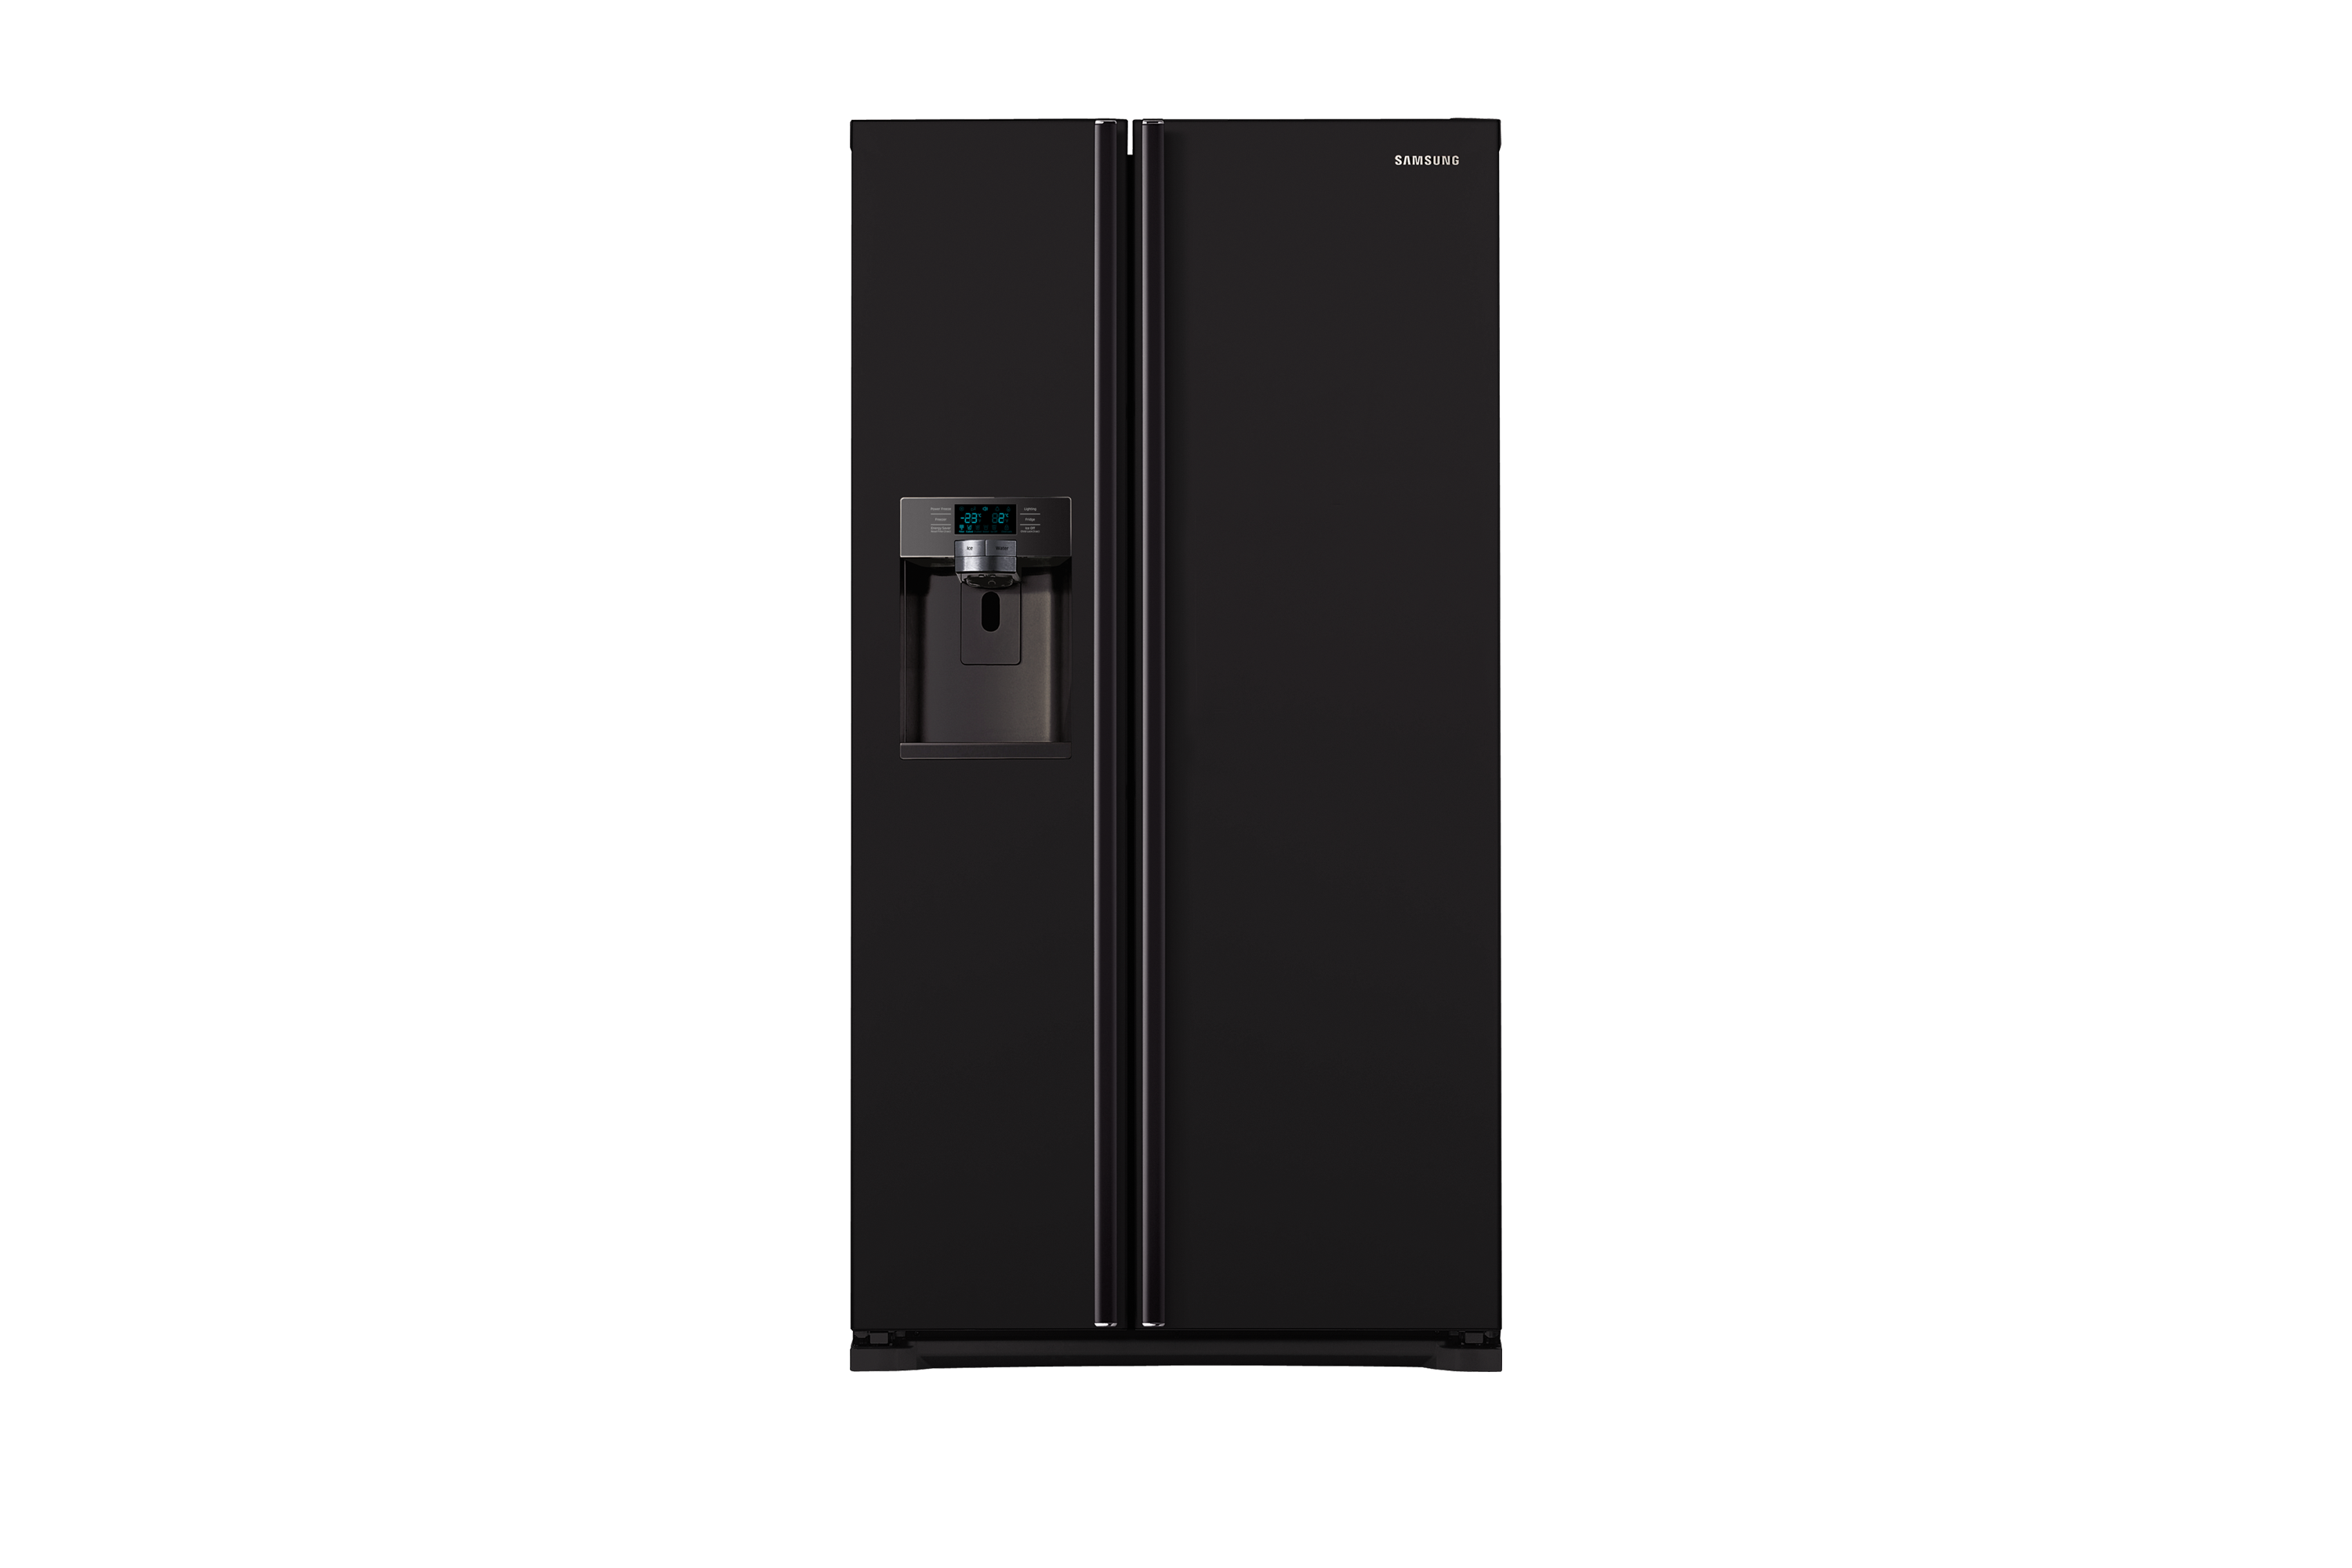 RSG5UUBP G-Series American Style Fridge Freezer